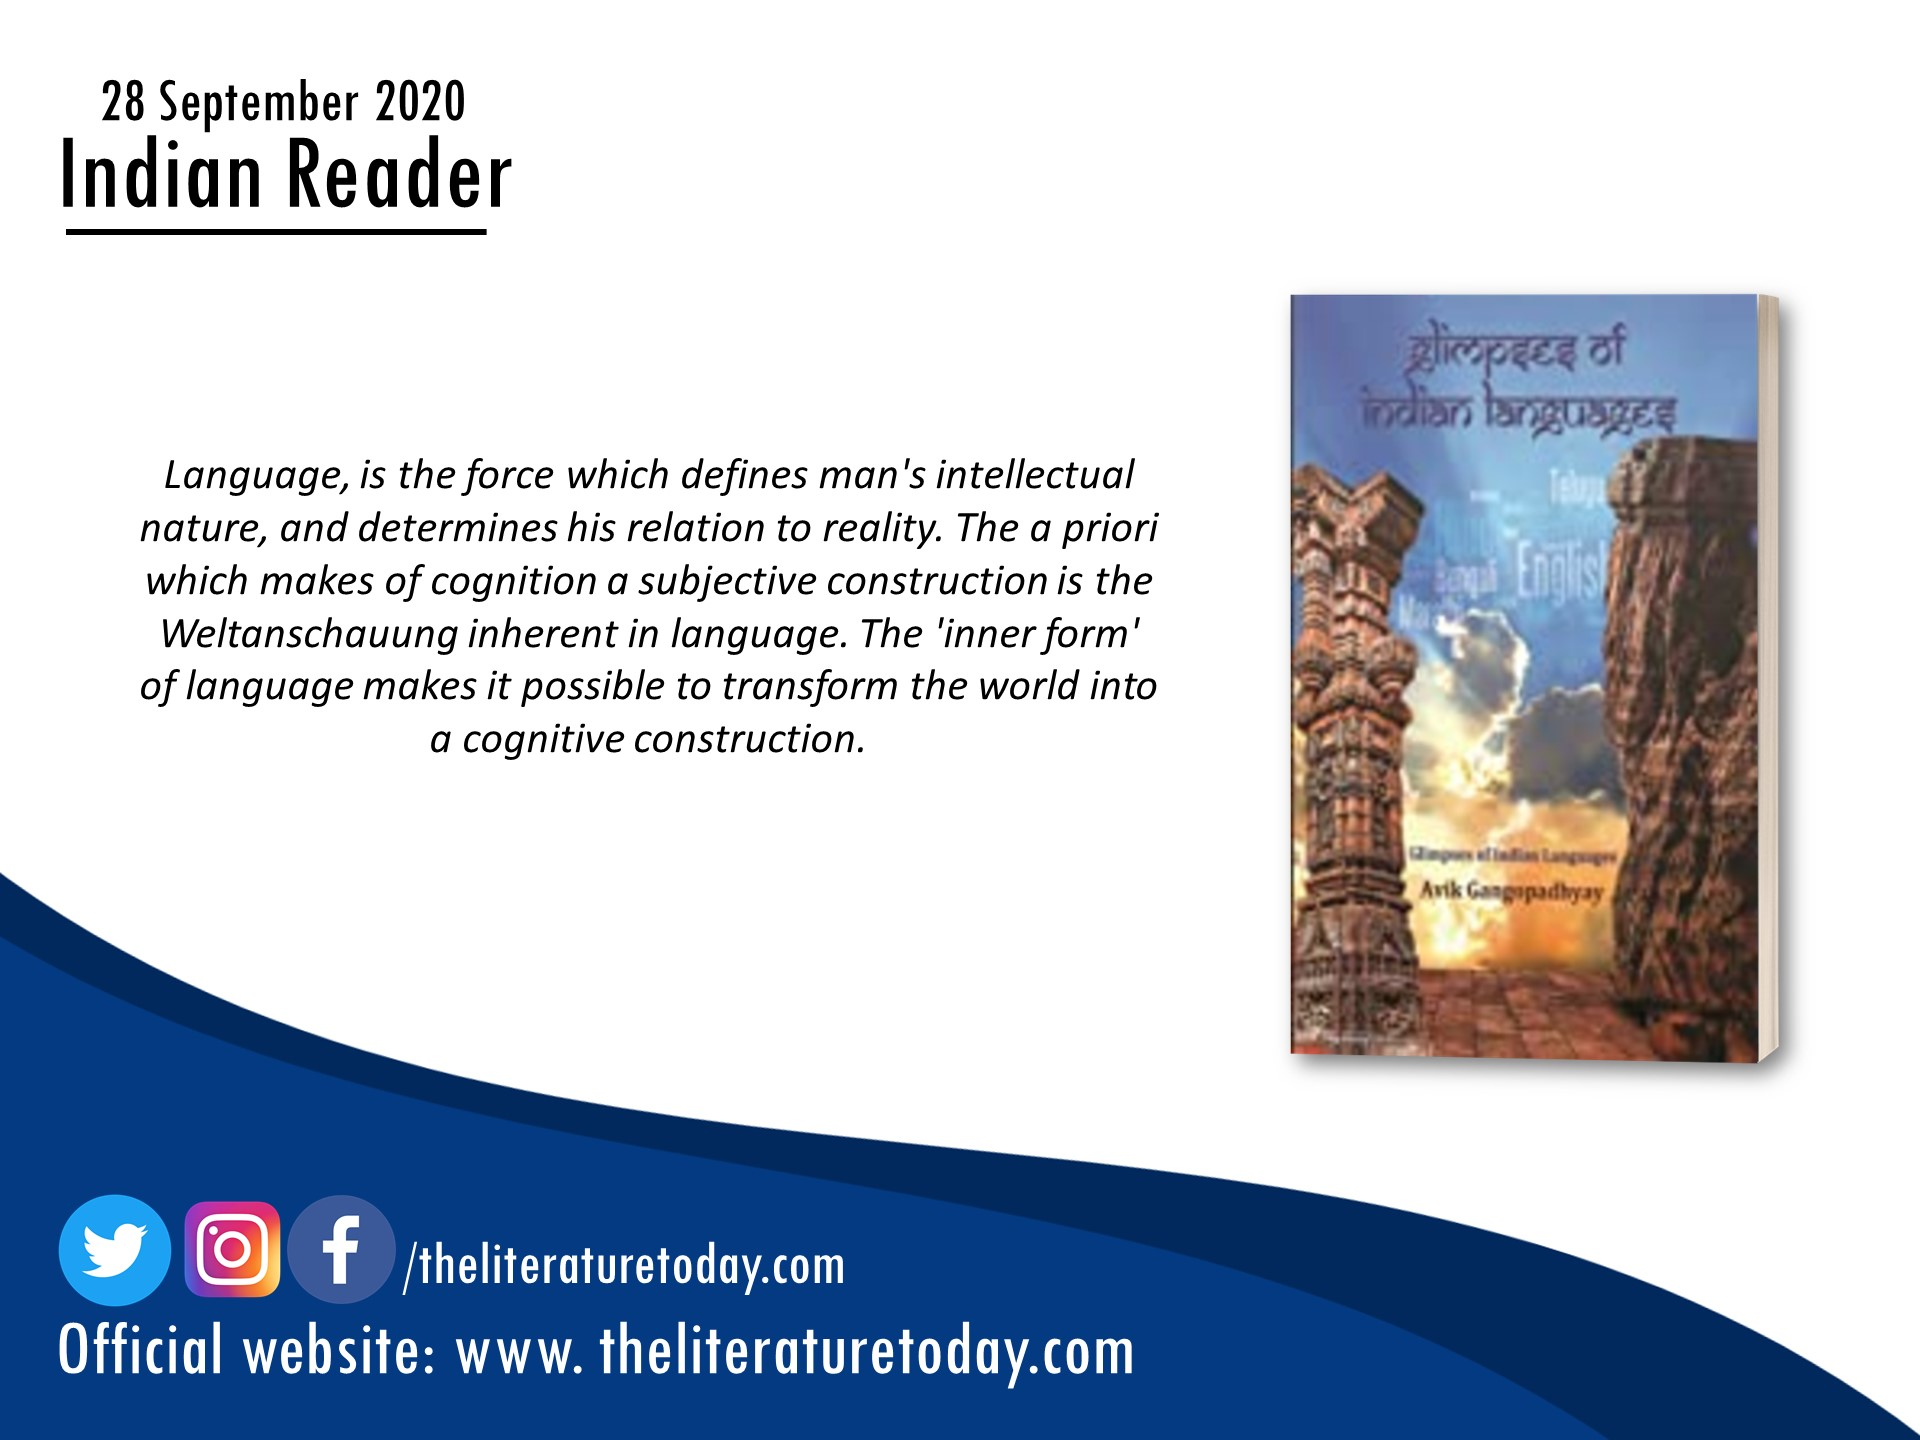 BOOK REVIEW | GLIMPSES OF INDIAN LANGUAGES  |AVIK GANGOPADHYAY